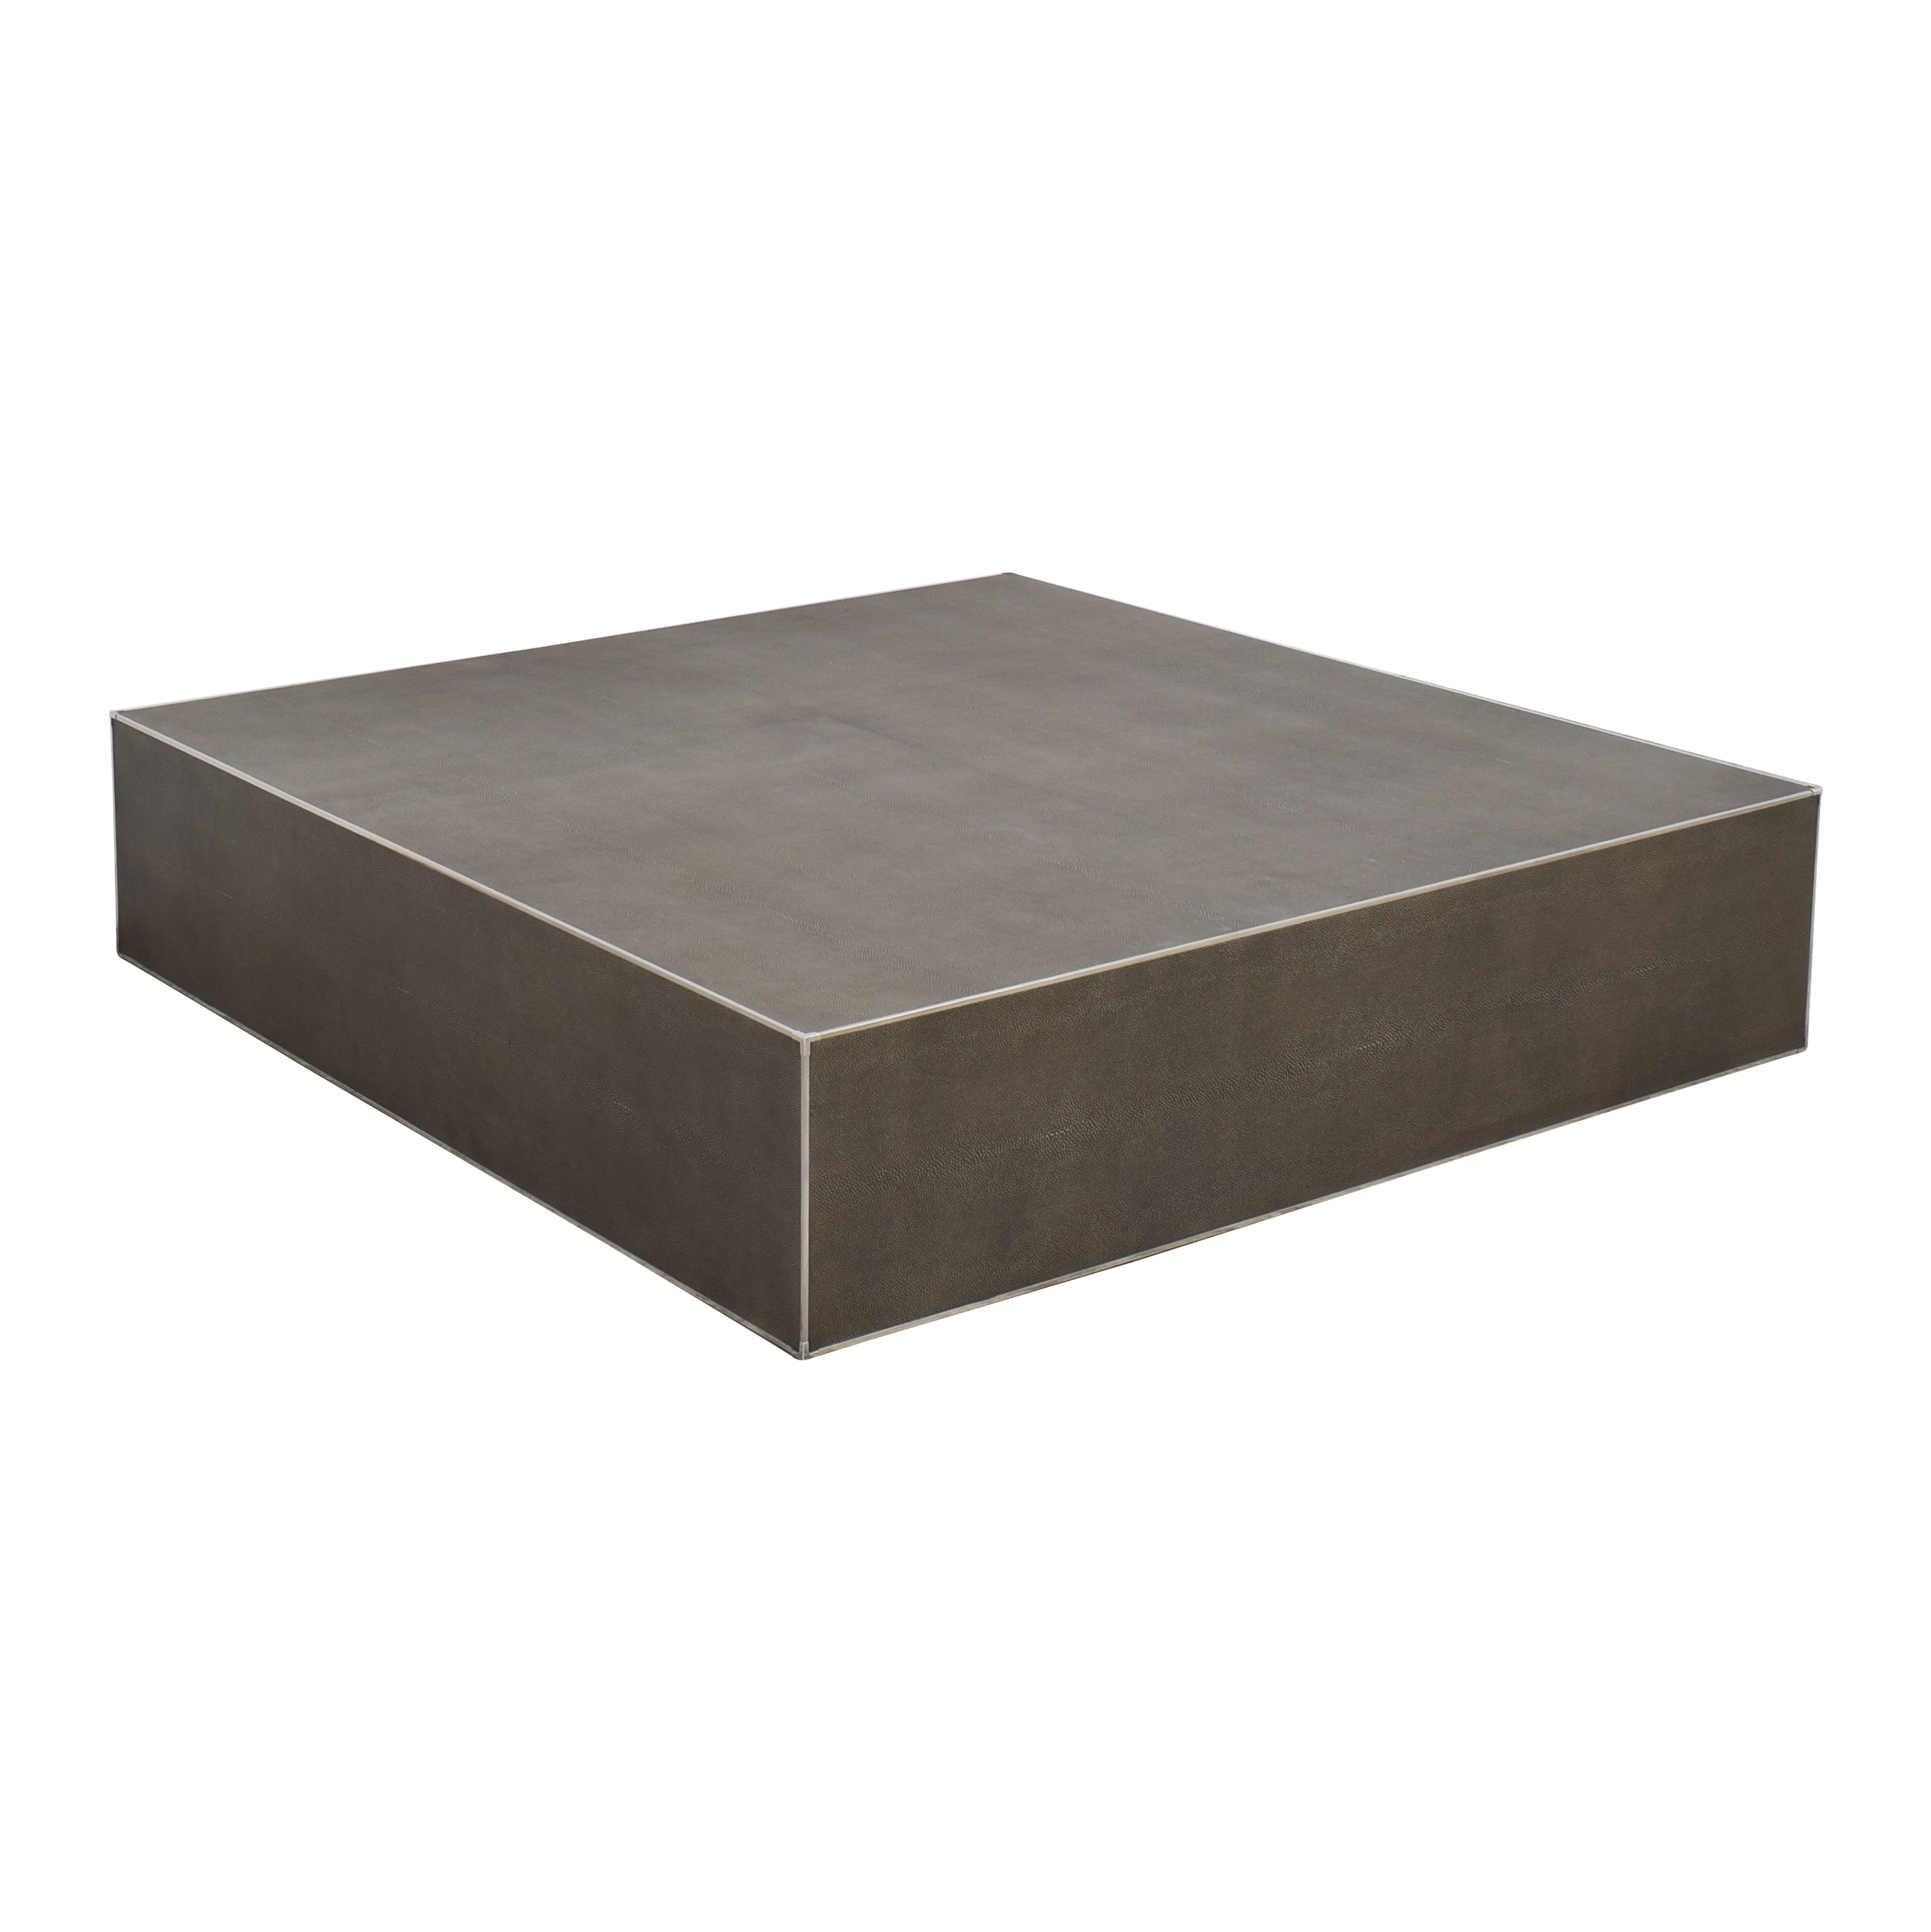 Restoration Hardware Restoration Hardware Saunderson Shagreen Cube Coffee Table ct